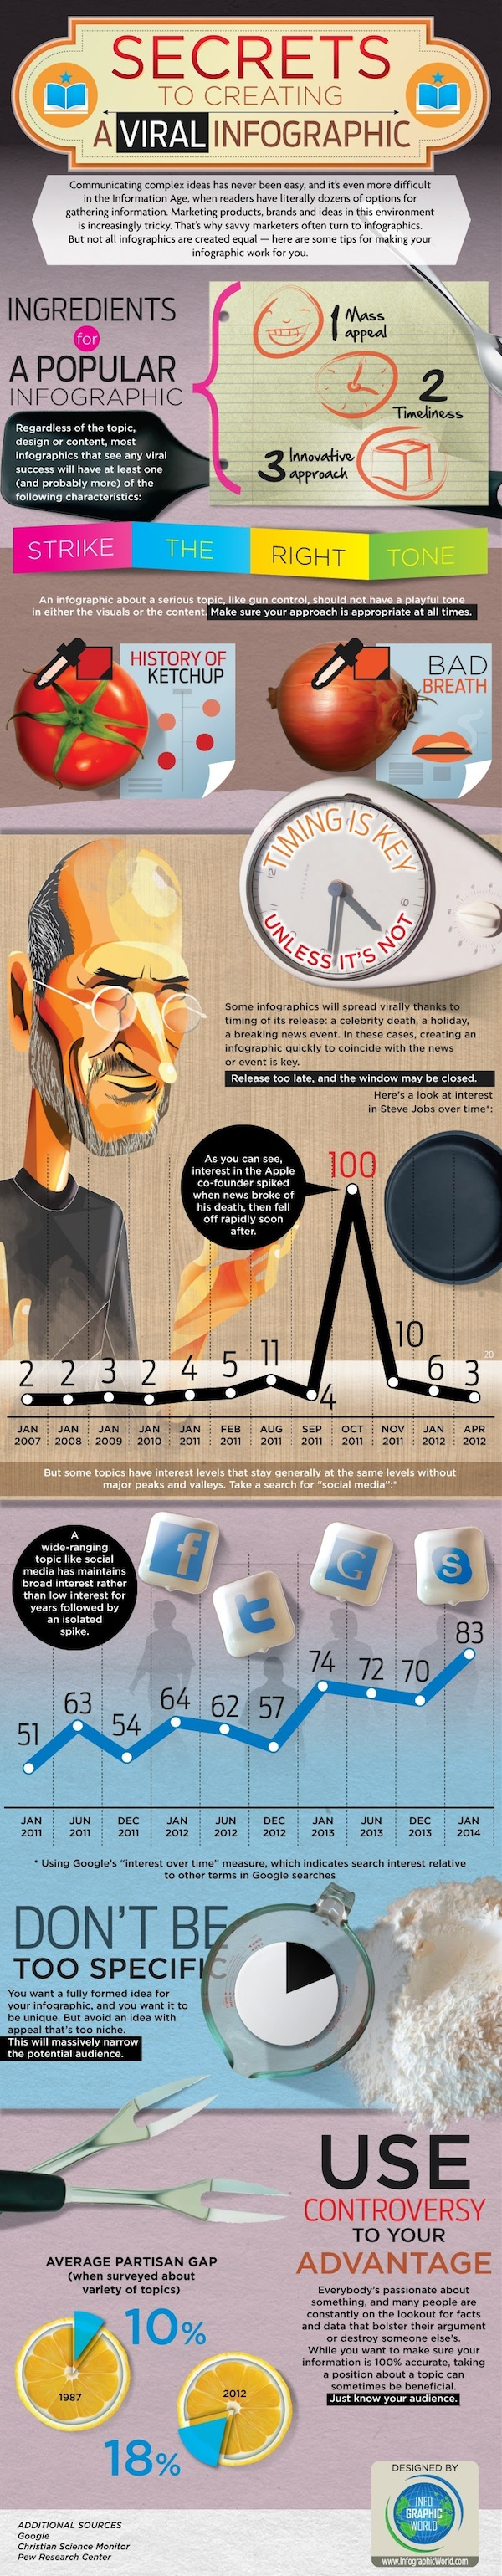 secrets to creating a viral infographic